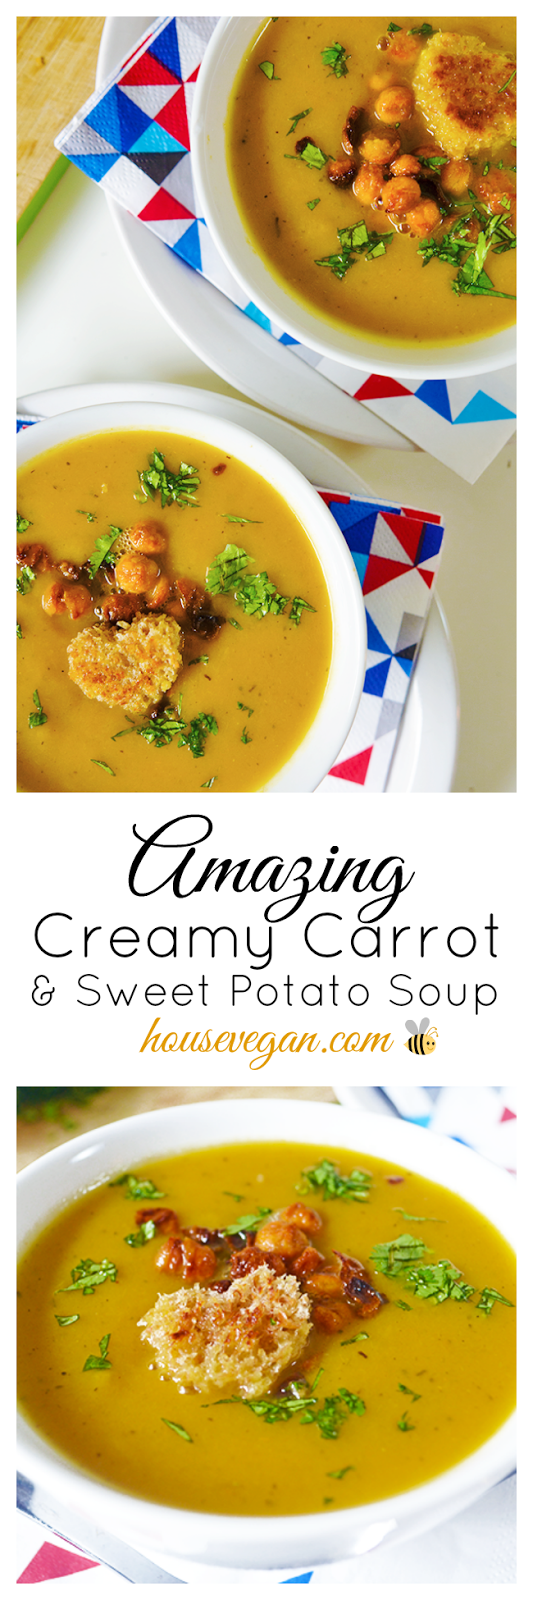 vegan cream soup, vegan carrot soup, vegan spring soup, vegan spring recipes, vegan cream soup recipe, amazing cream soup, creamy carrot soup, carrot and sweet potato soup, best vegan soup